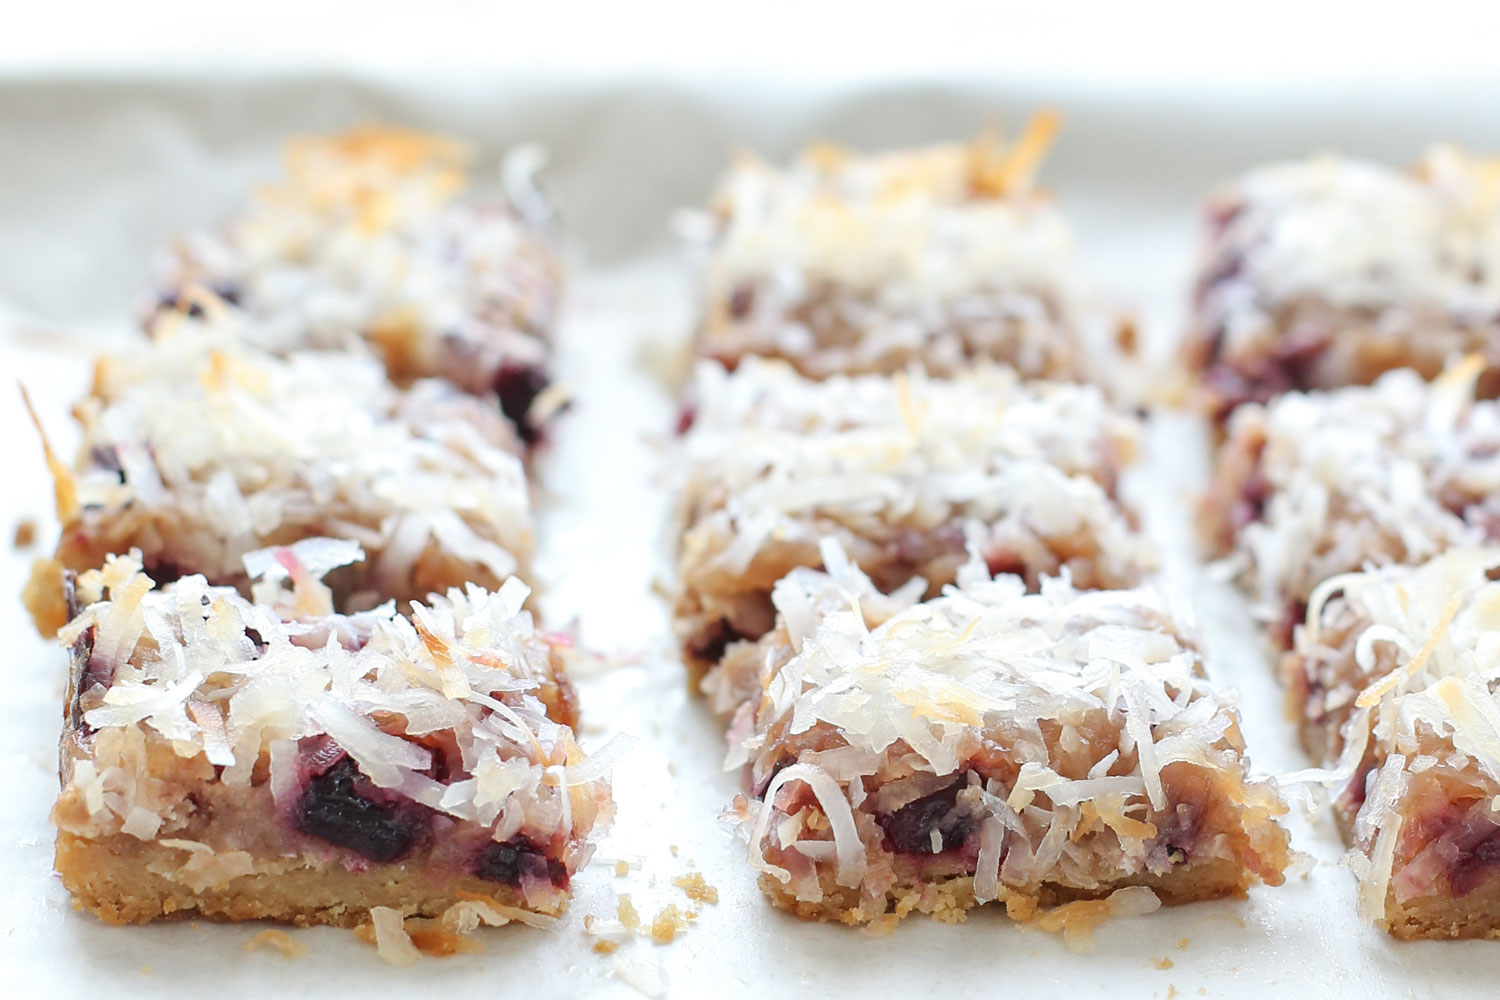 Cherry Coconut Bars (traditional and gluten free recipes) by Barefeet In The Kitchen